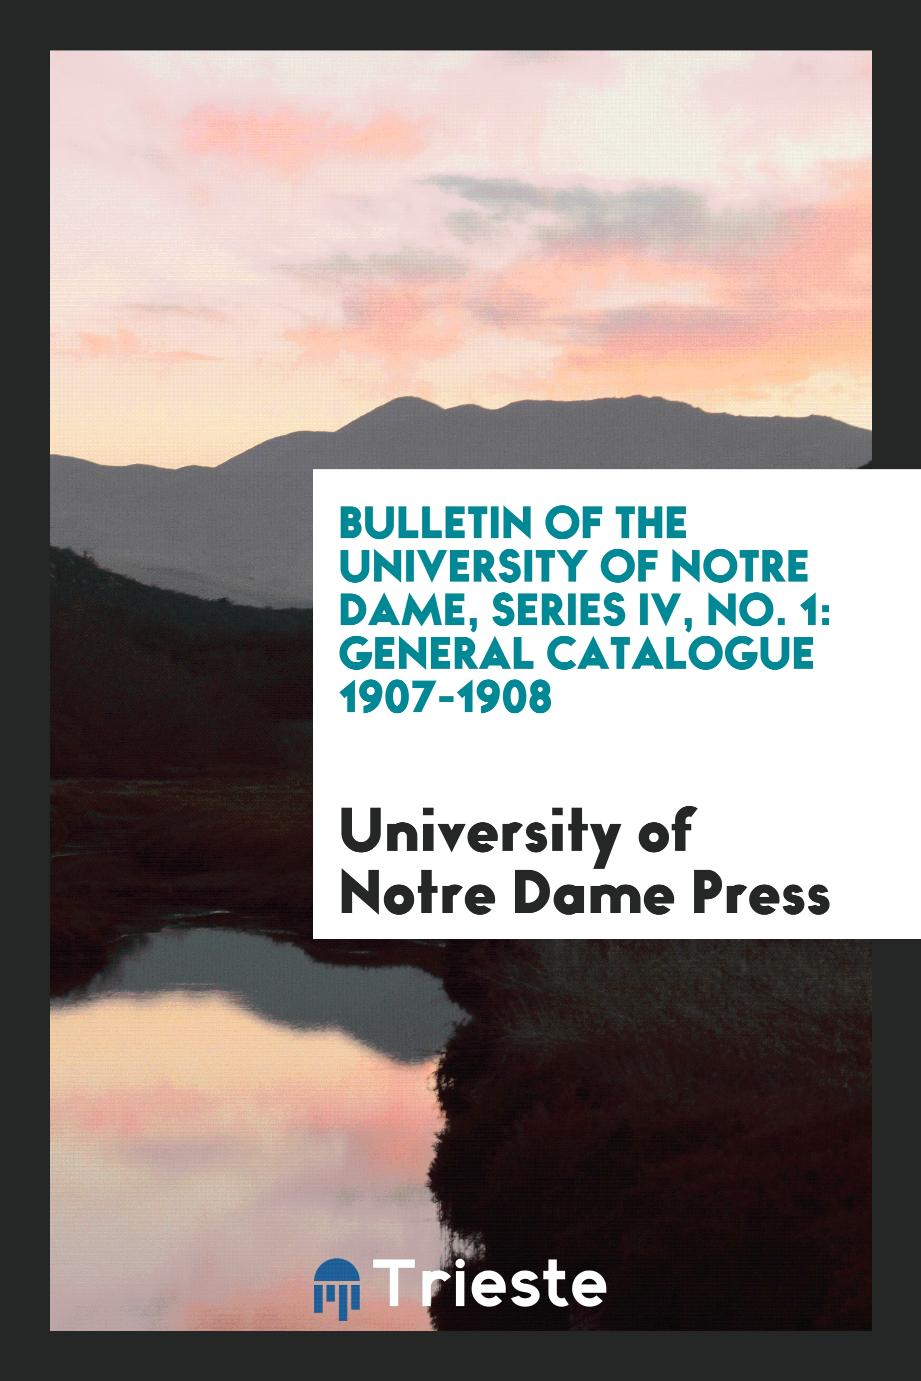 Bulletin of the University of Notre Dame, Series IV, No. 1: General Catalogue 1907-1908